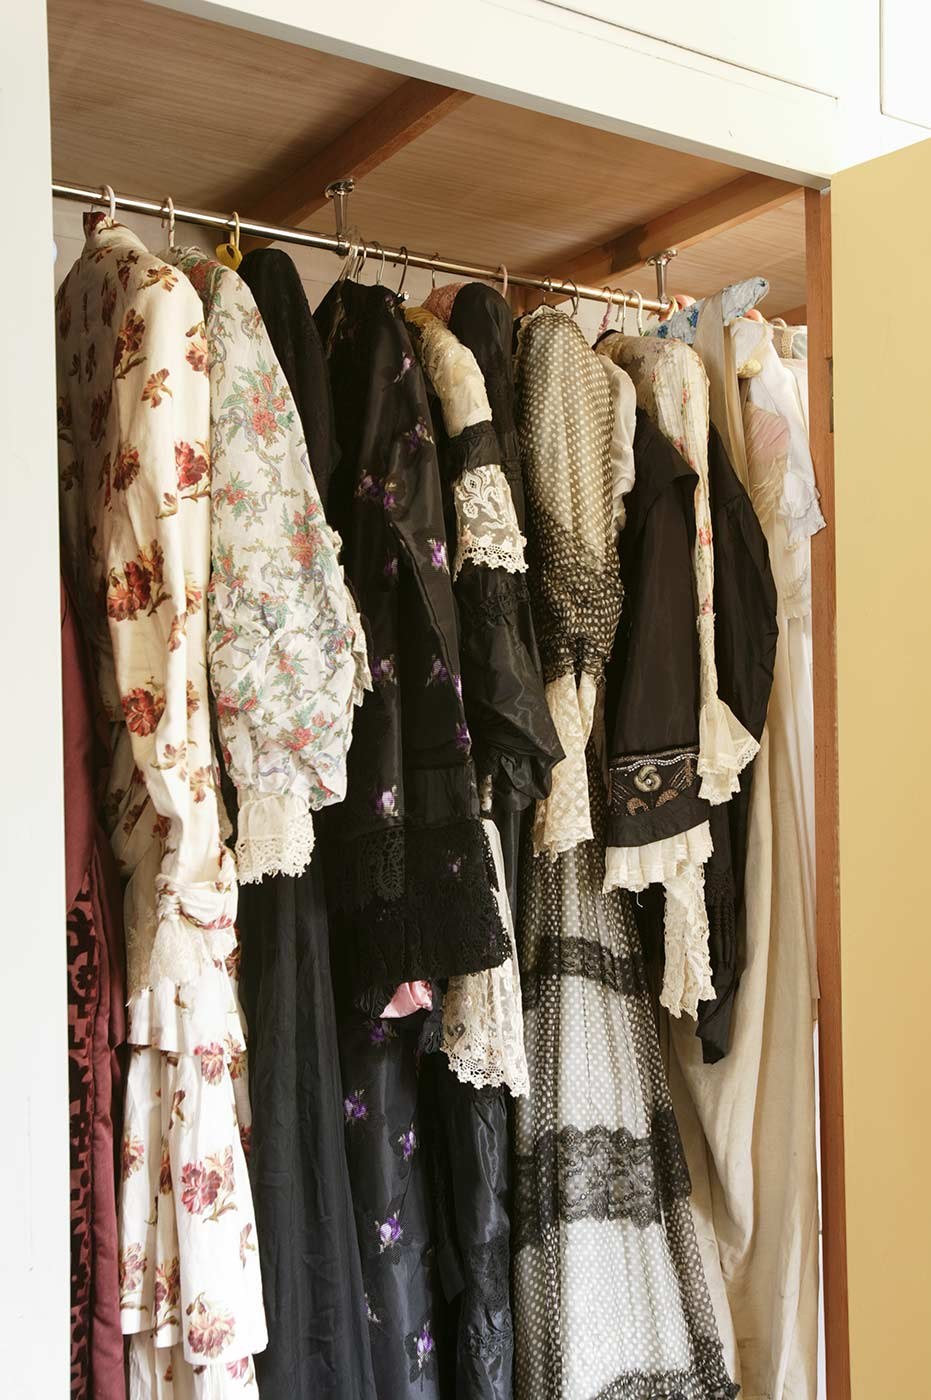 19th and 20th century dresses stored in a wardrobe. - click to view larger image